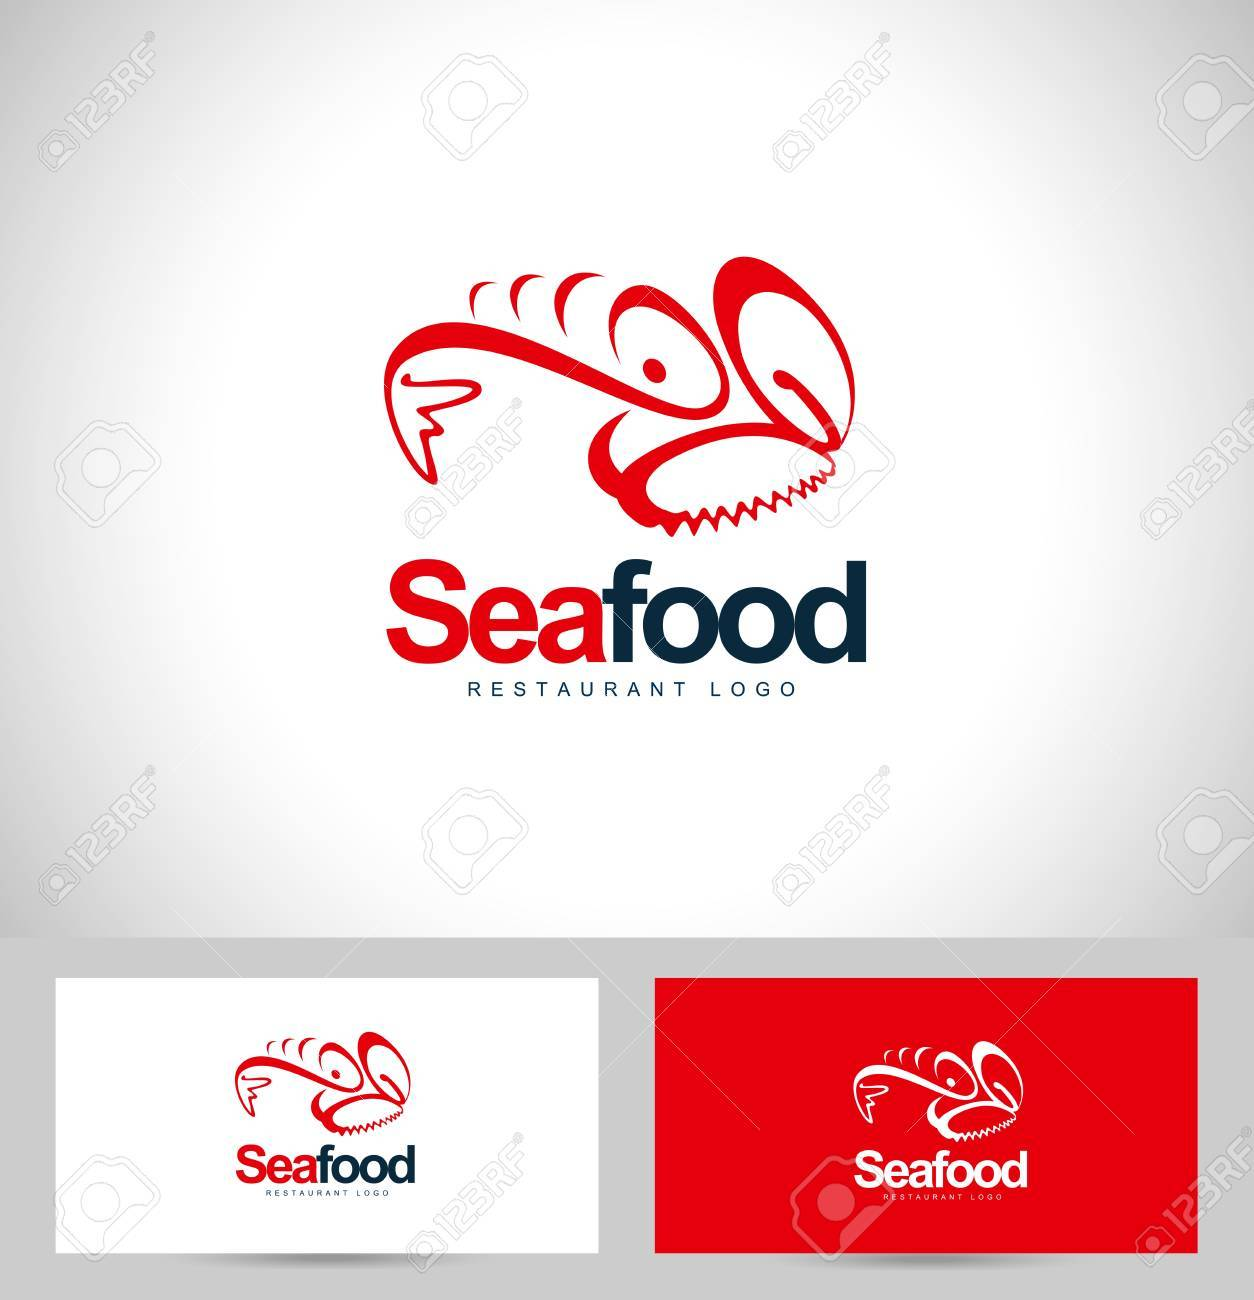 Seafood Restaurant Design. Creative concept with business card..